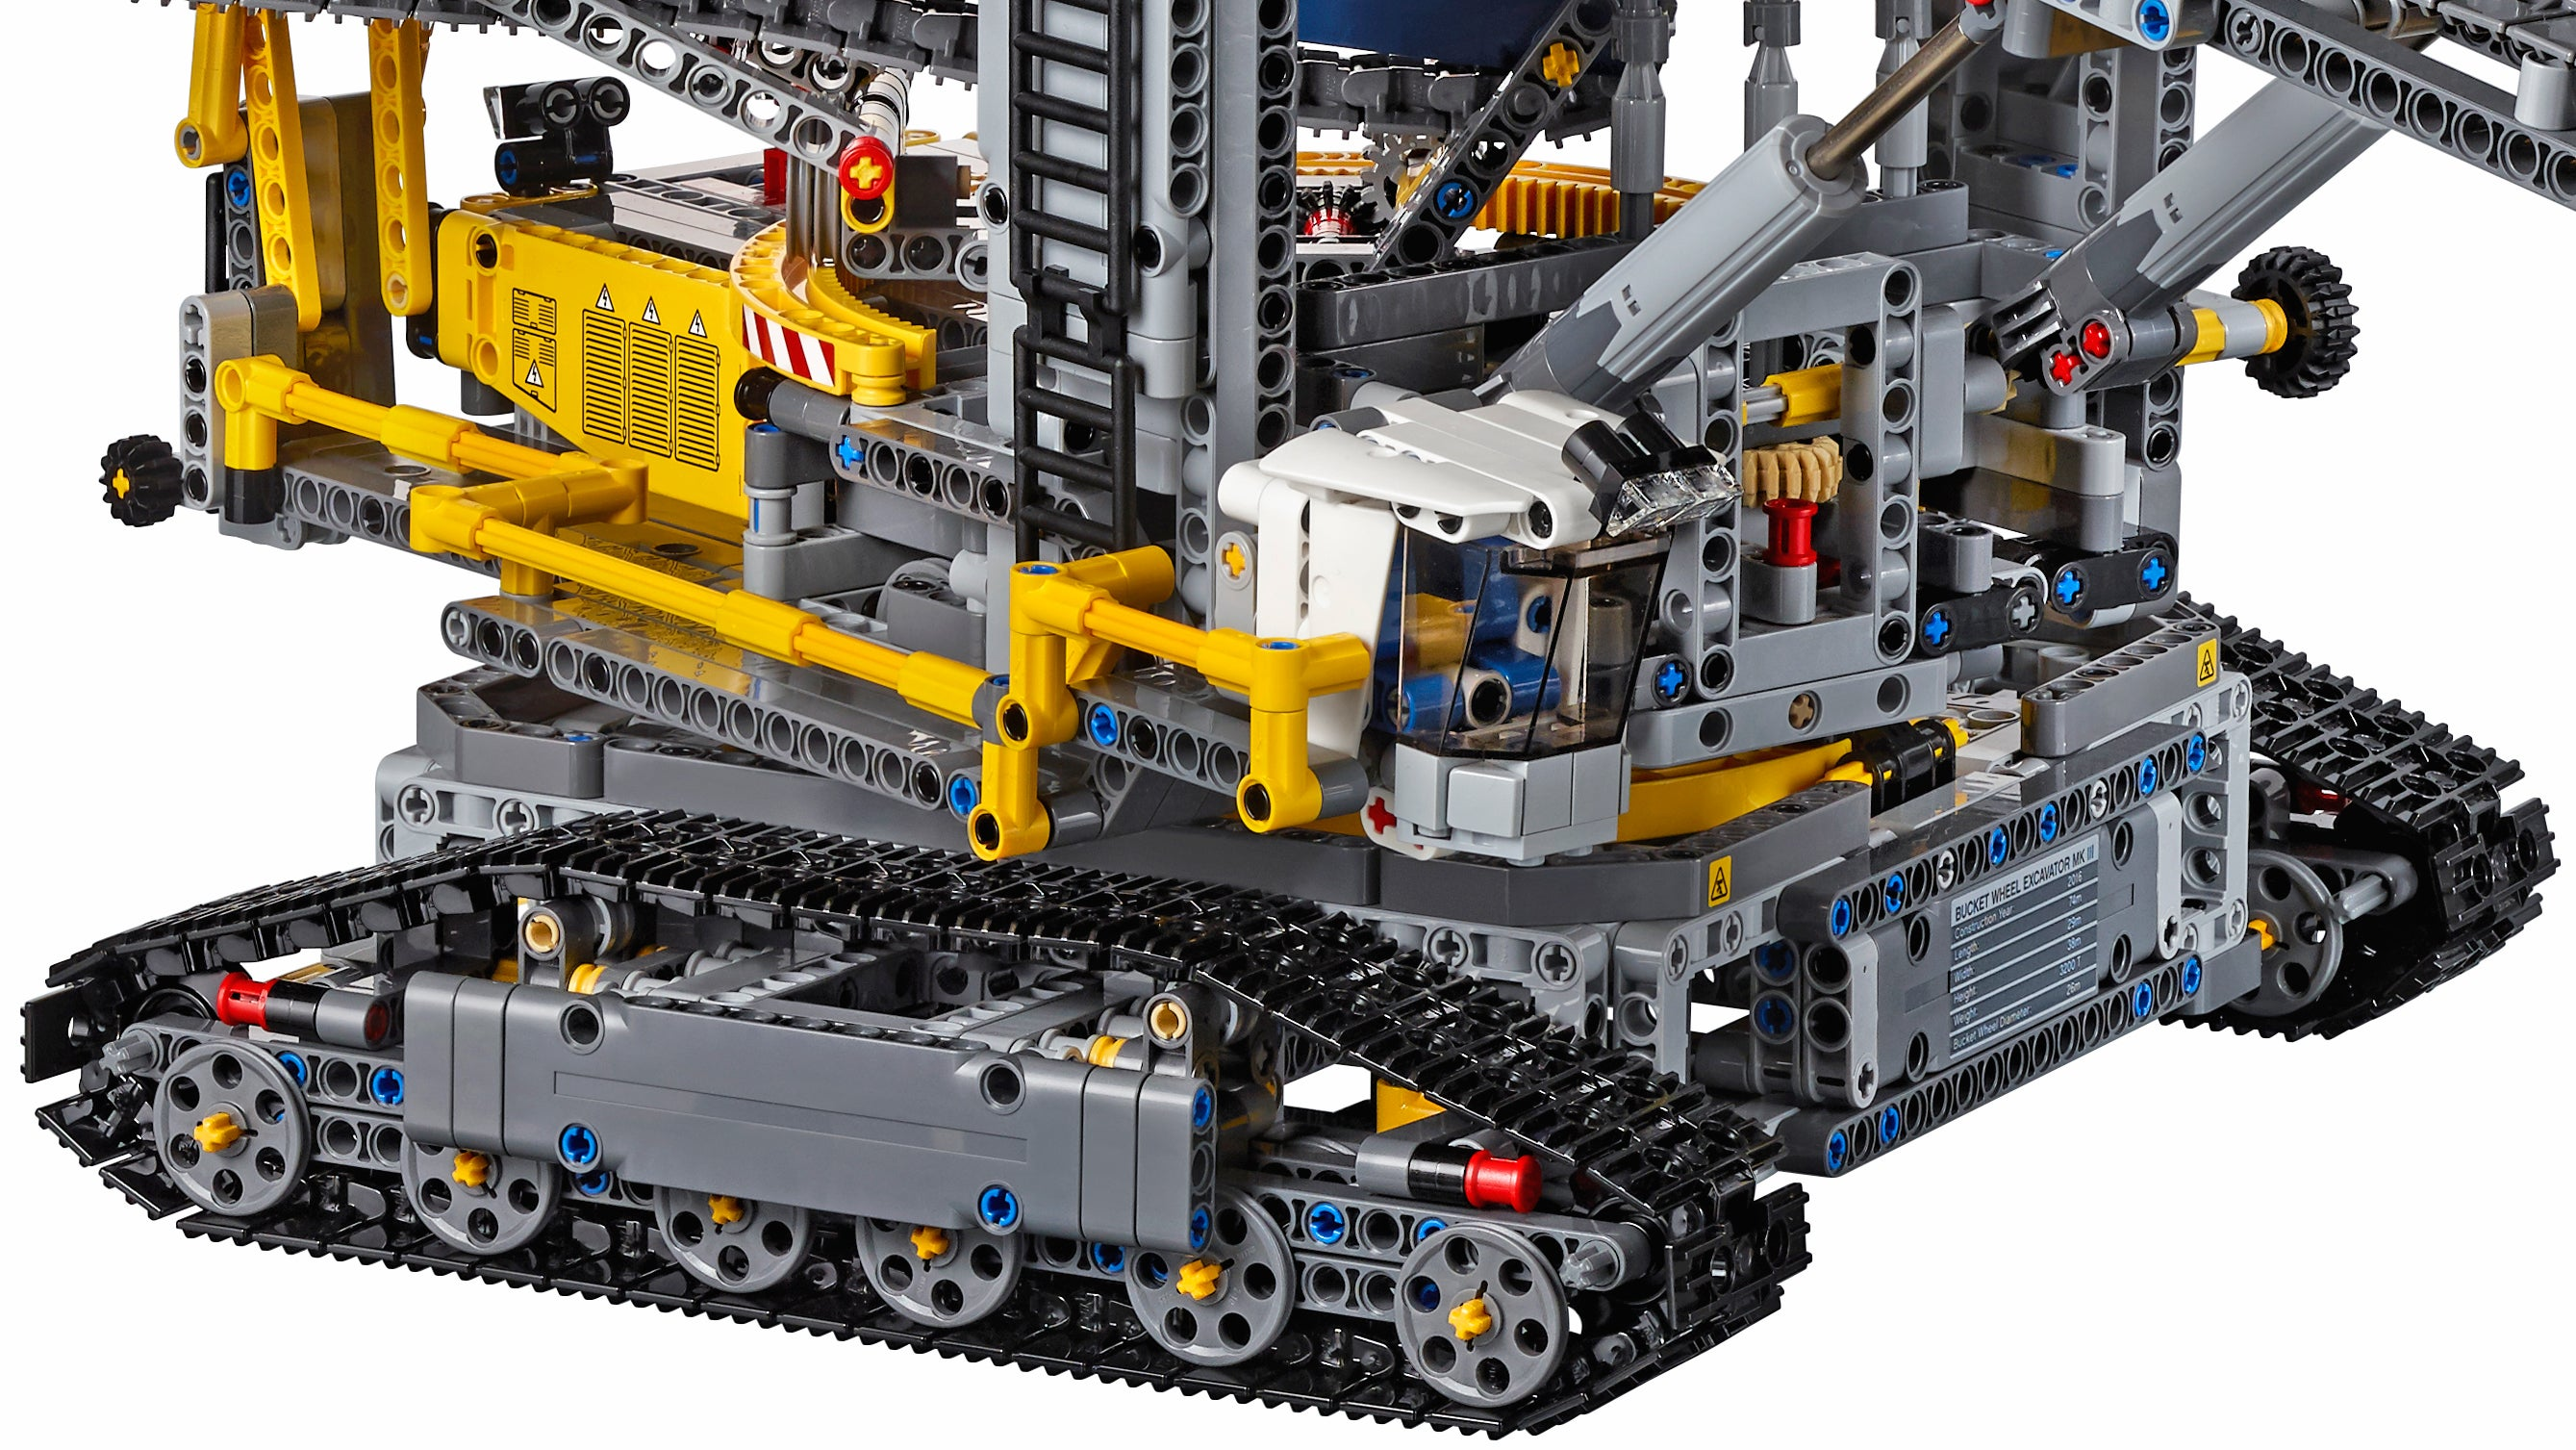 lego 39 s largest technic set can dig a moat around your home gizmodo australia. Black Bedroom Furniture Sets. Home Design Ideas